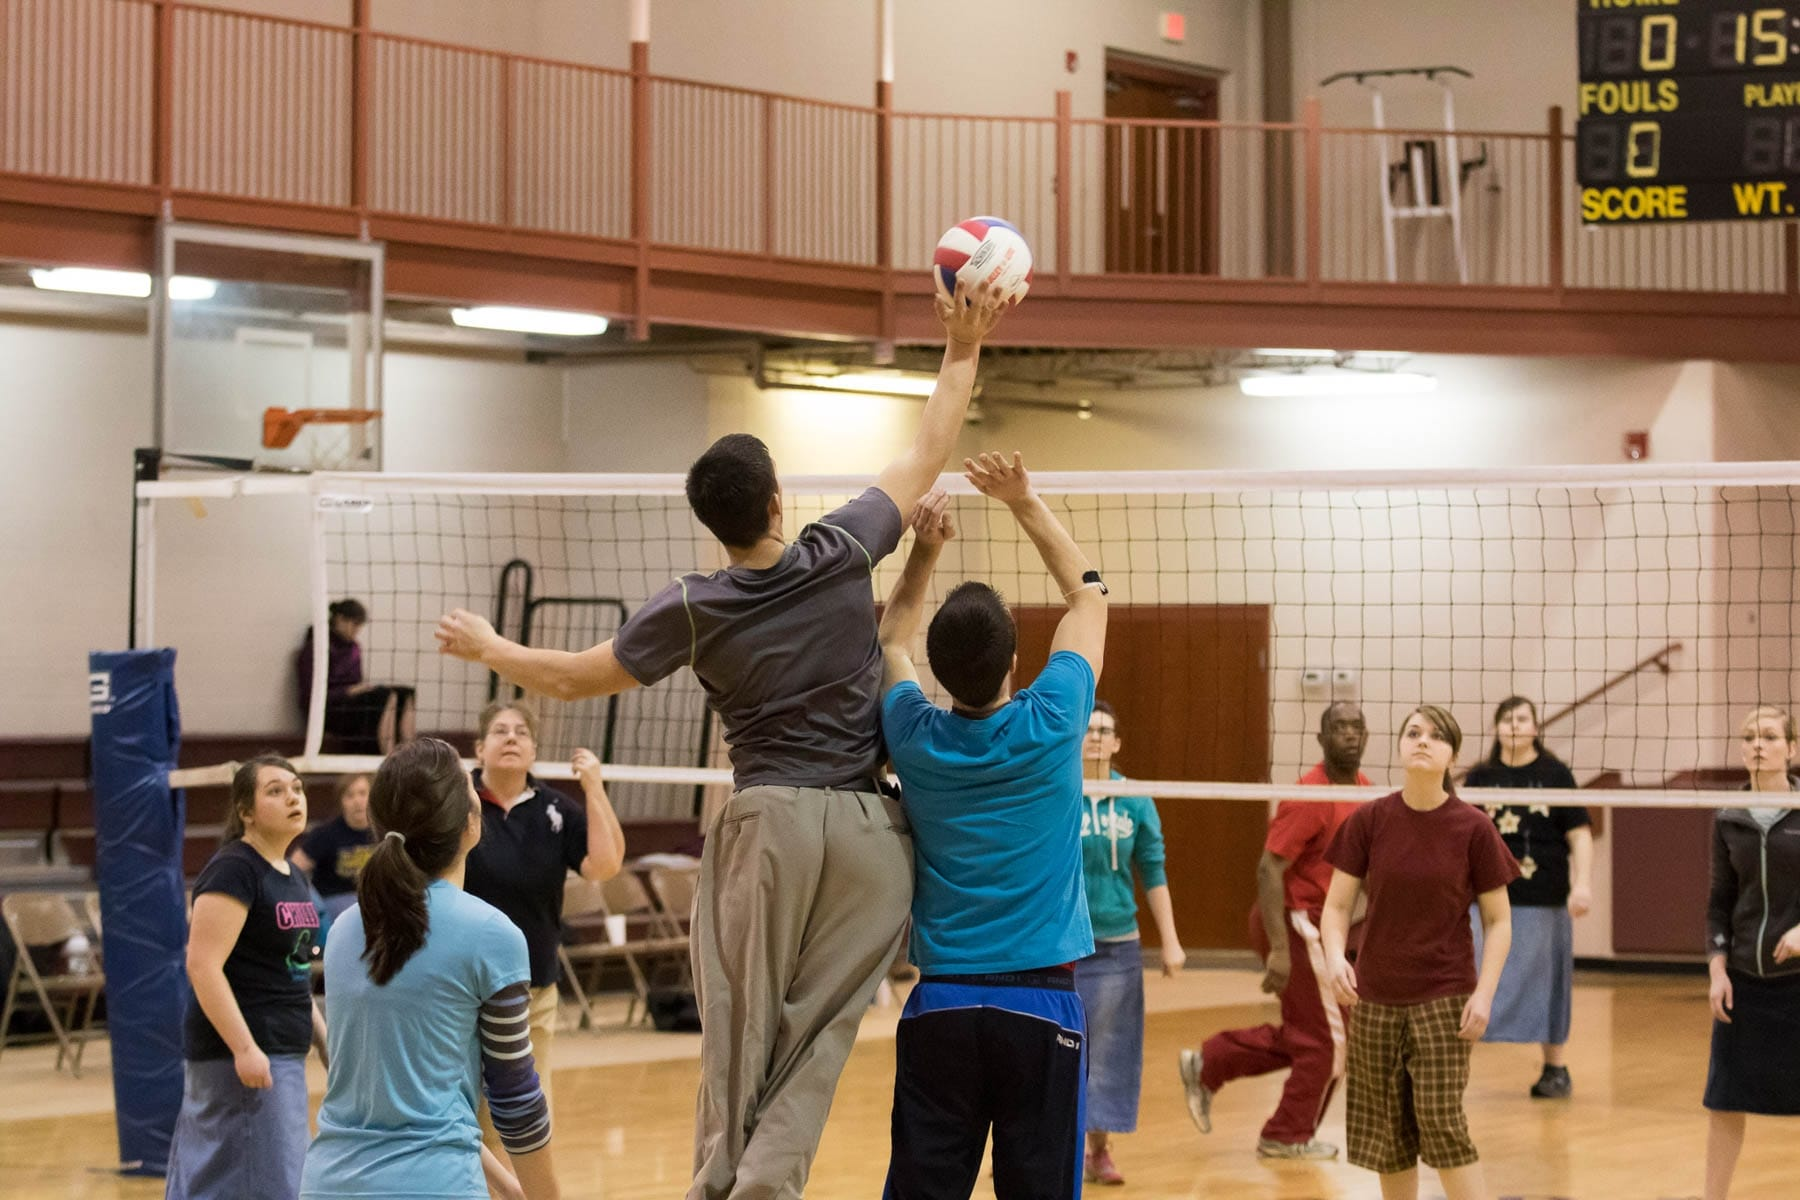 Fairhaven Baptist College Volleyball Marathon 2016 (11 of 20)